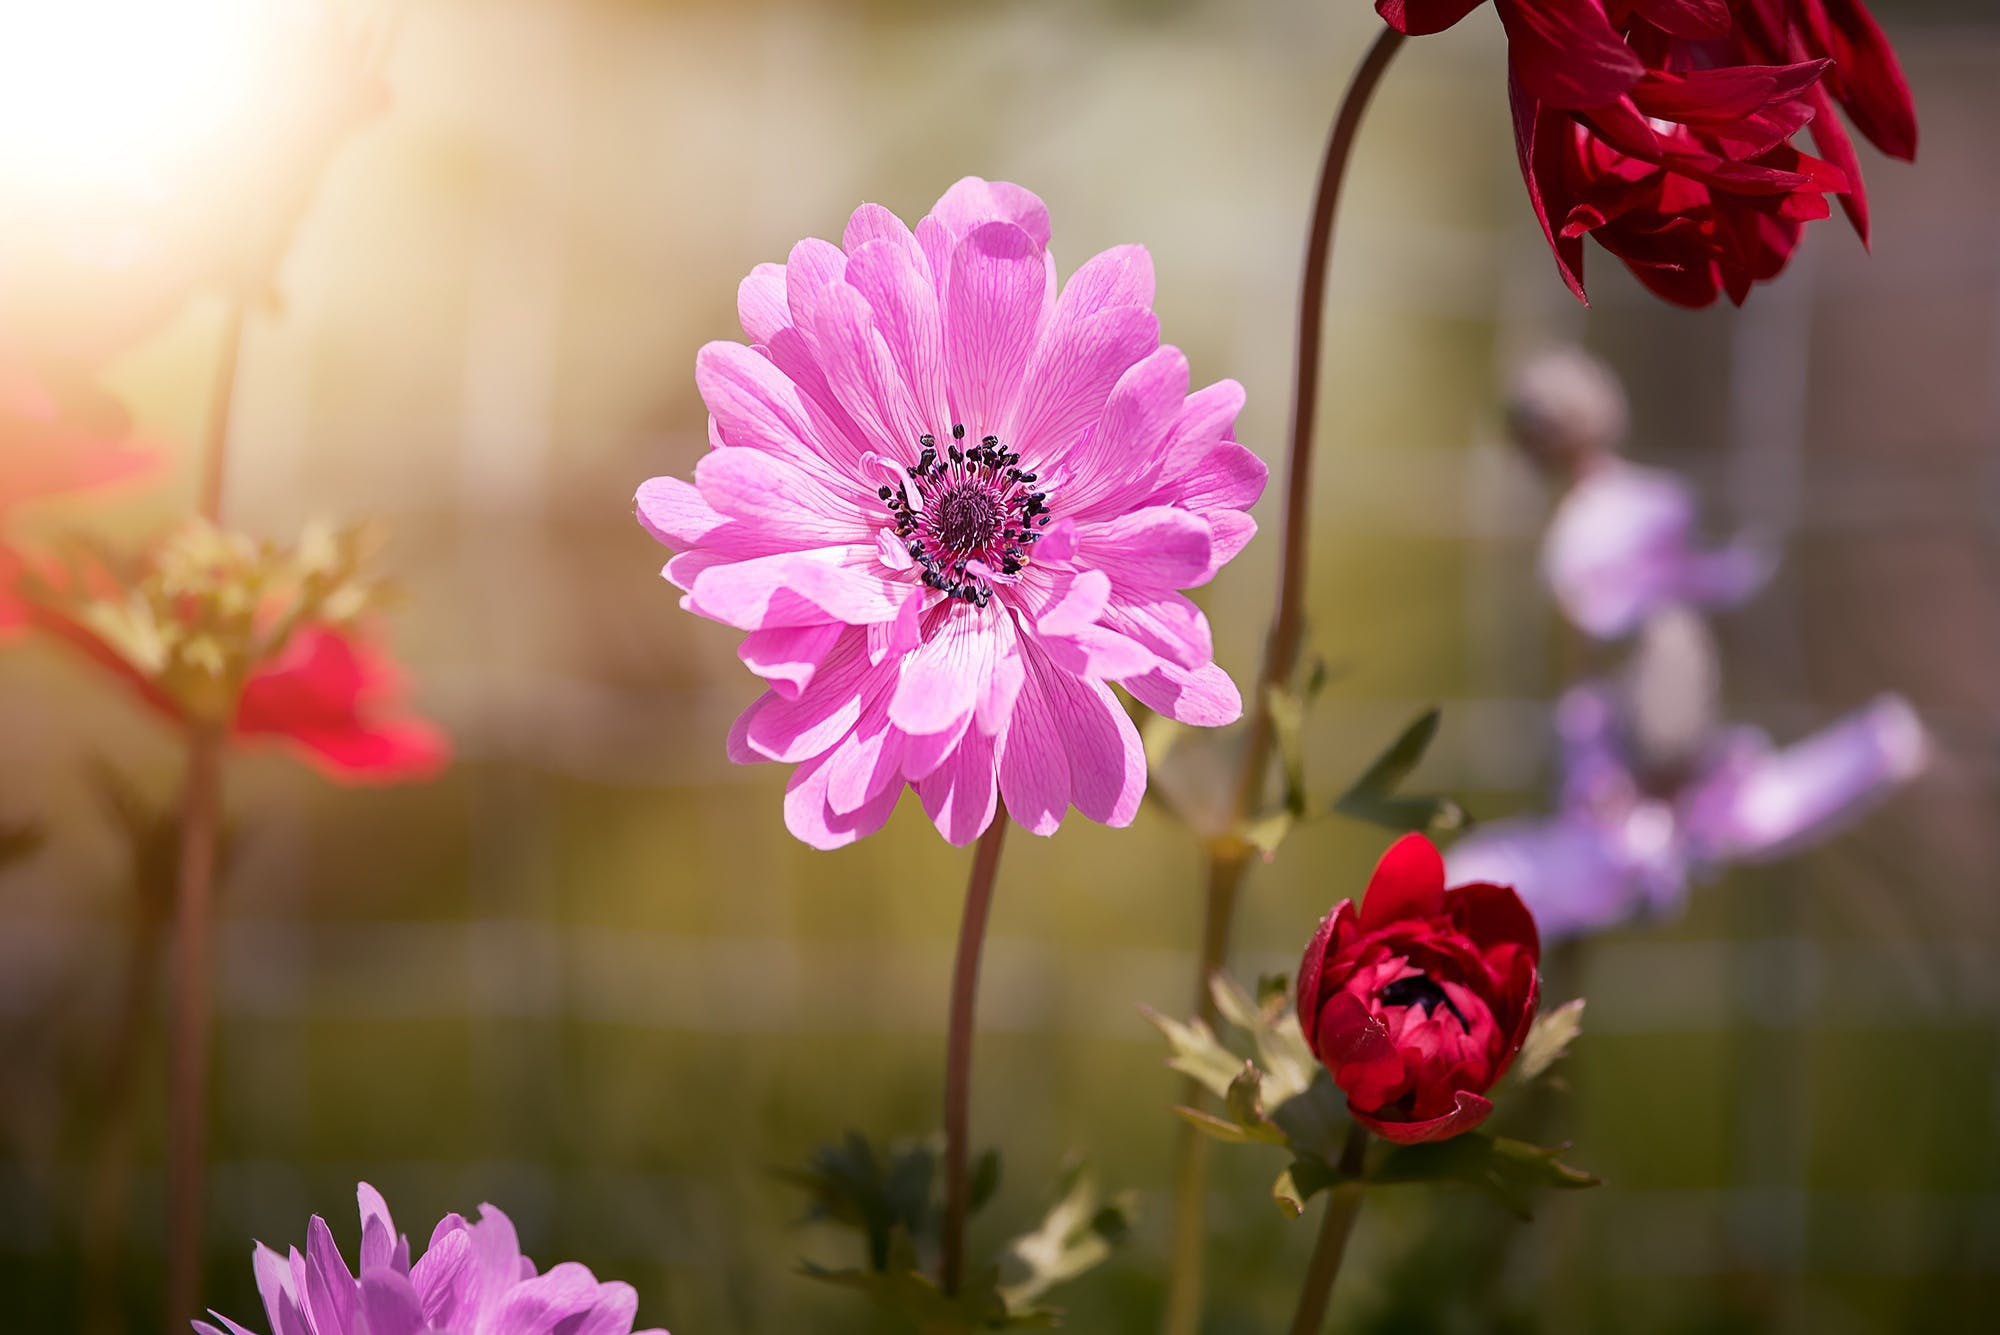 Pink and Red Petal Flowers